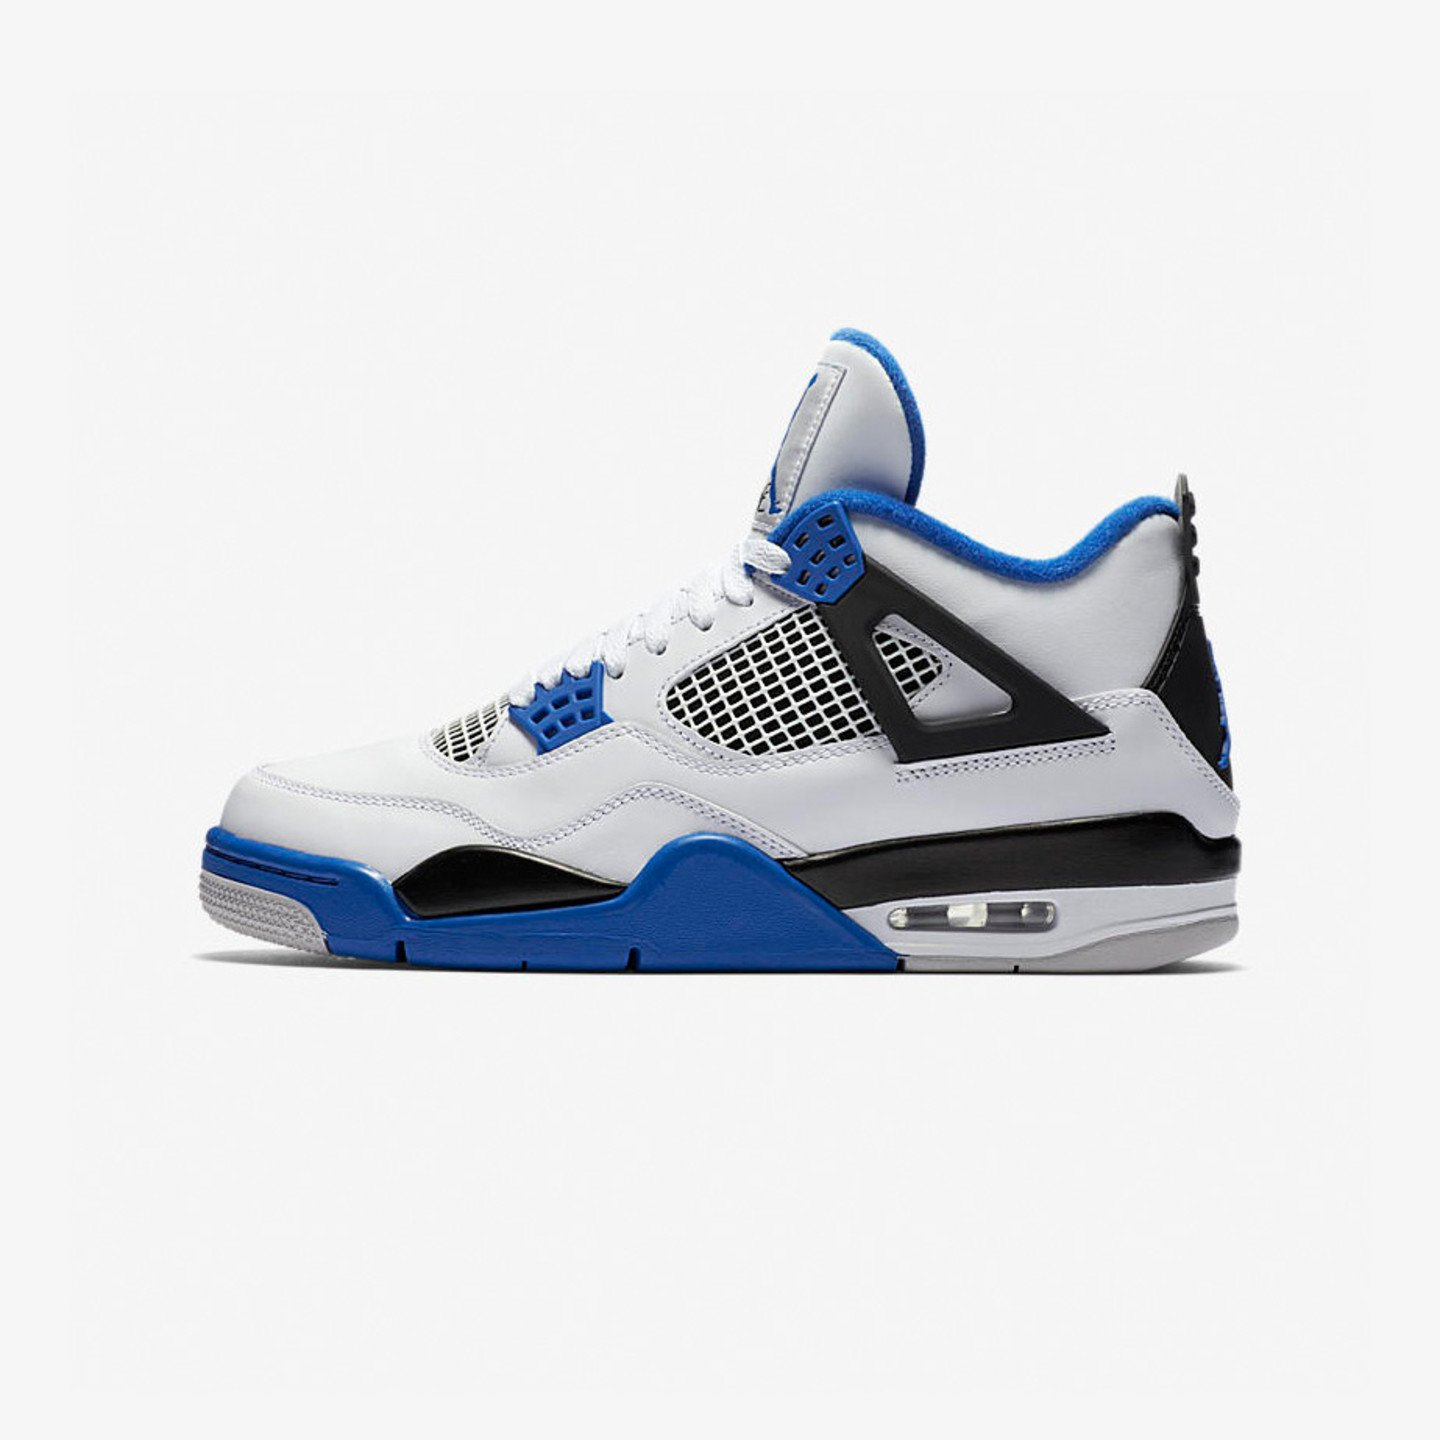 unbestimmt Air Jordan 4 Retro GS 'Motorsport' White / Game Royal / Black 408452-117-38